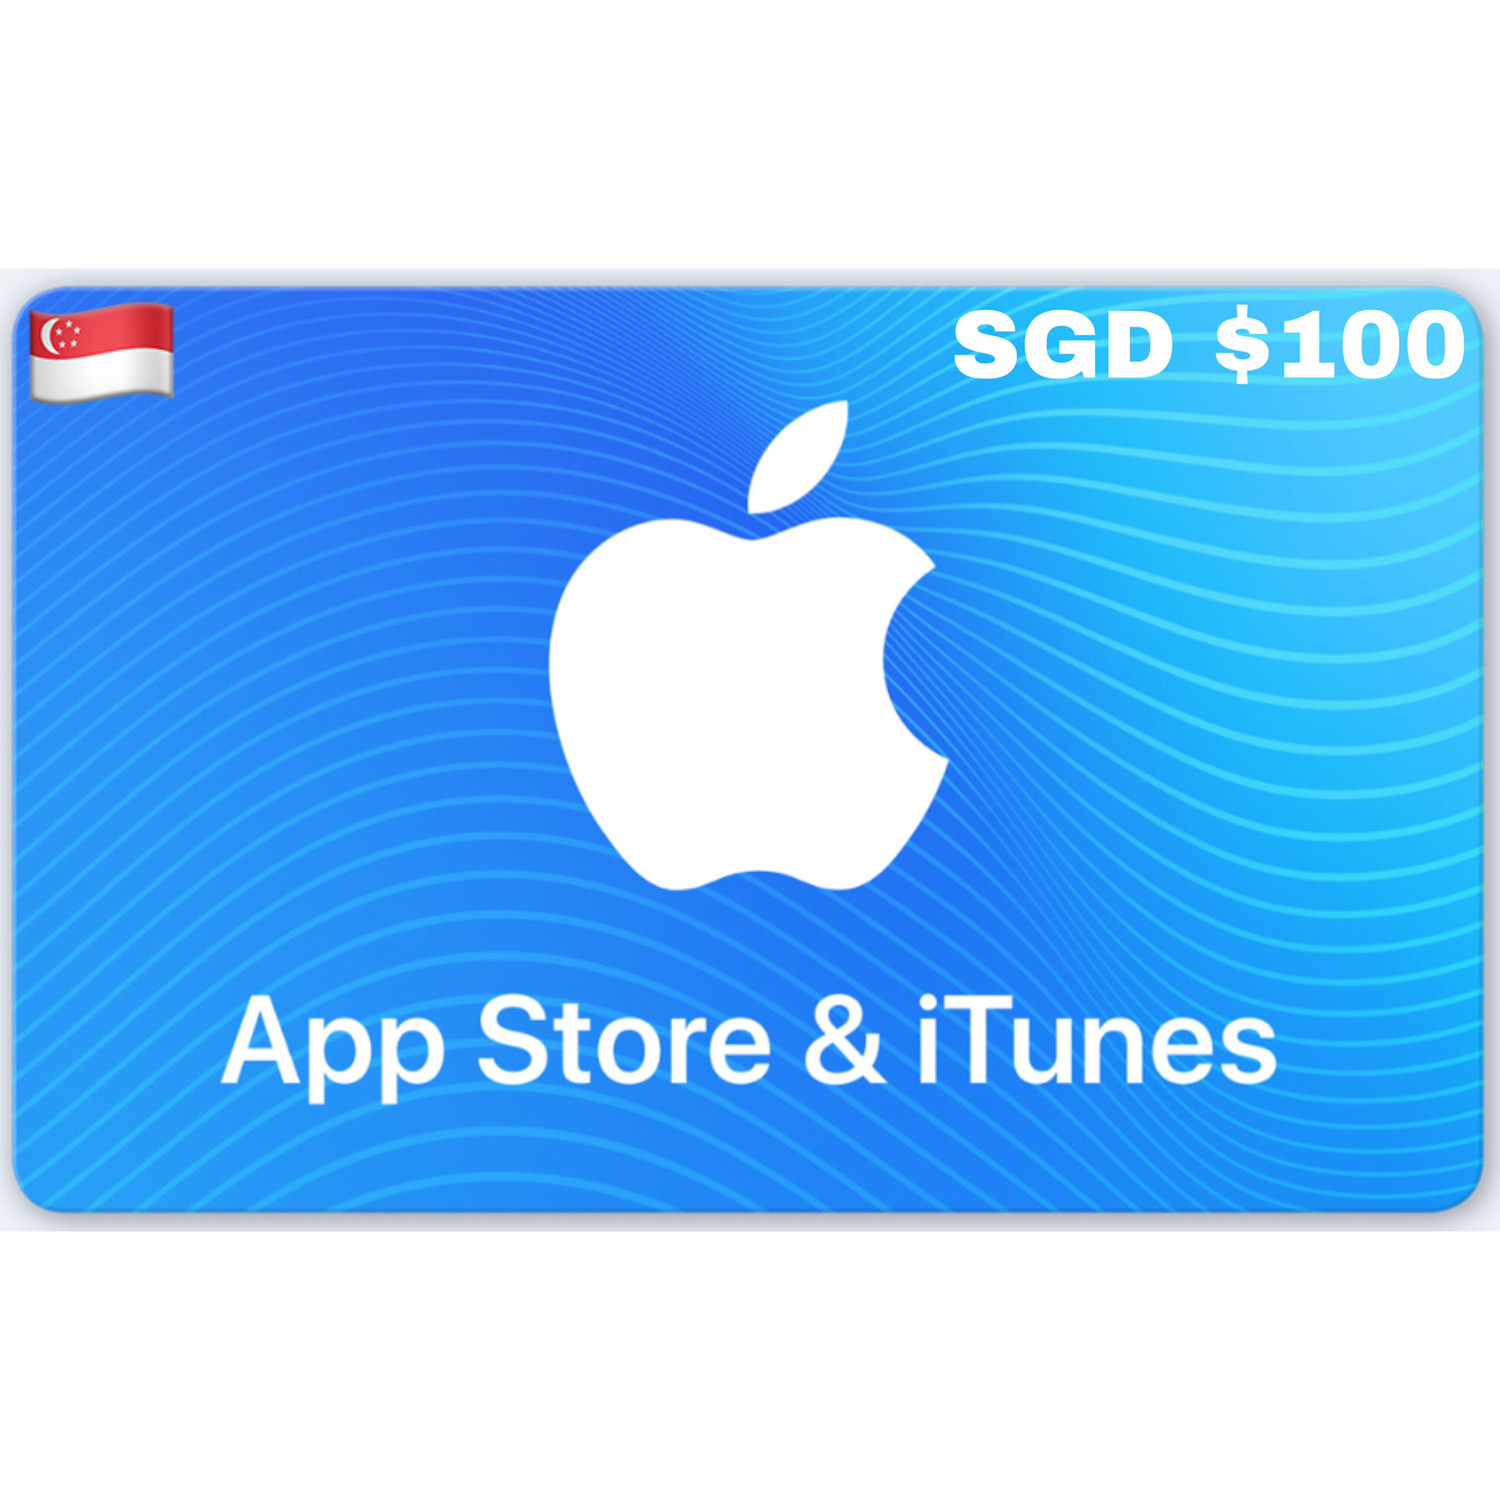 Apple App Store & iTunes Gift Card Singapore SGD $100